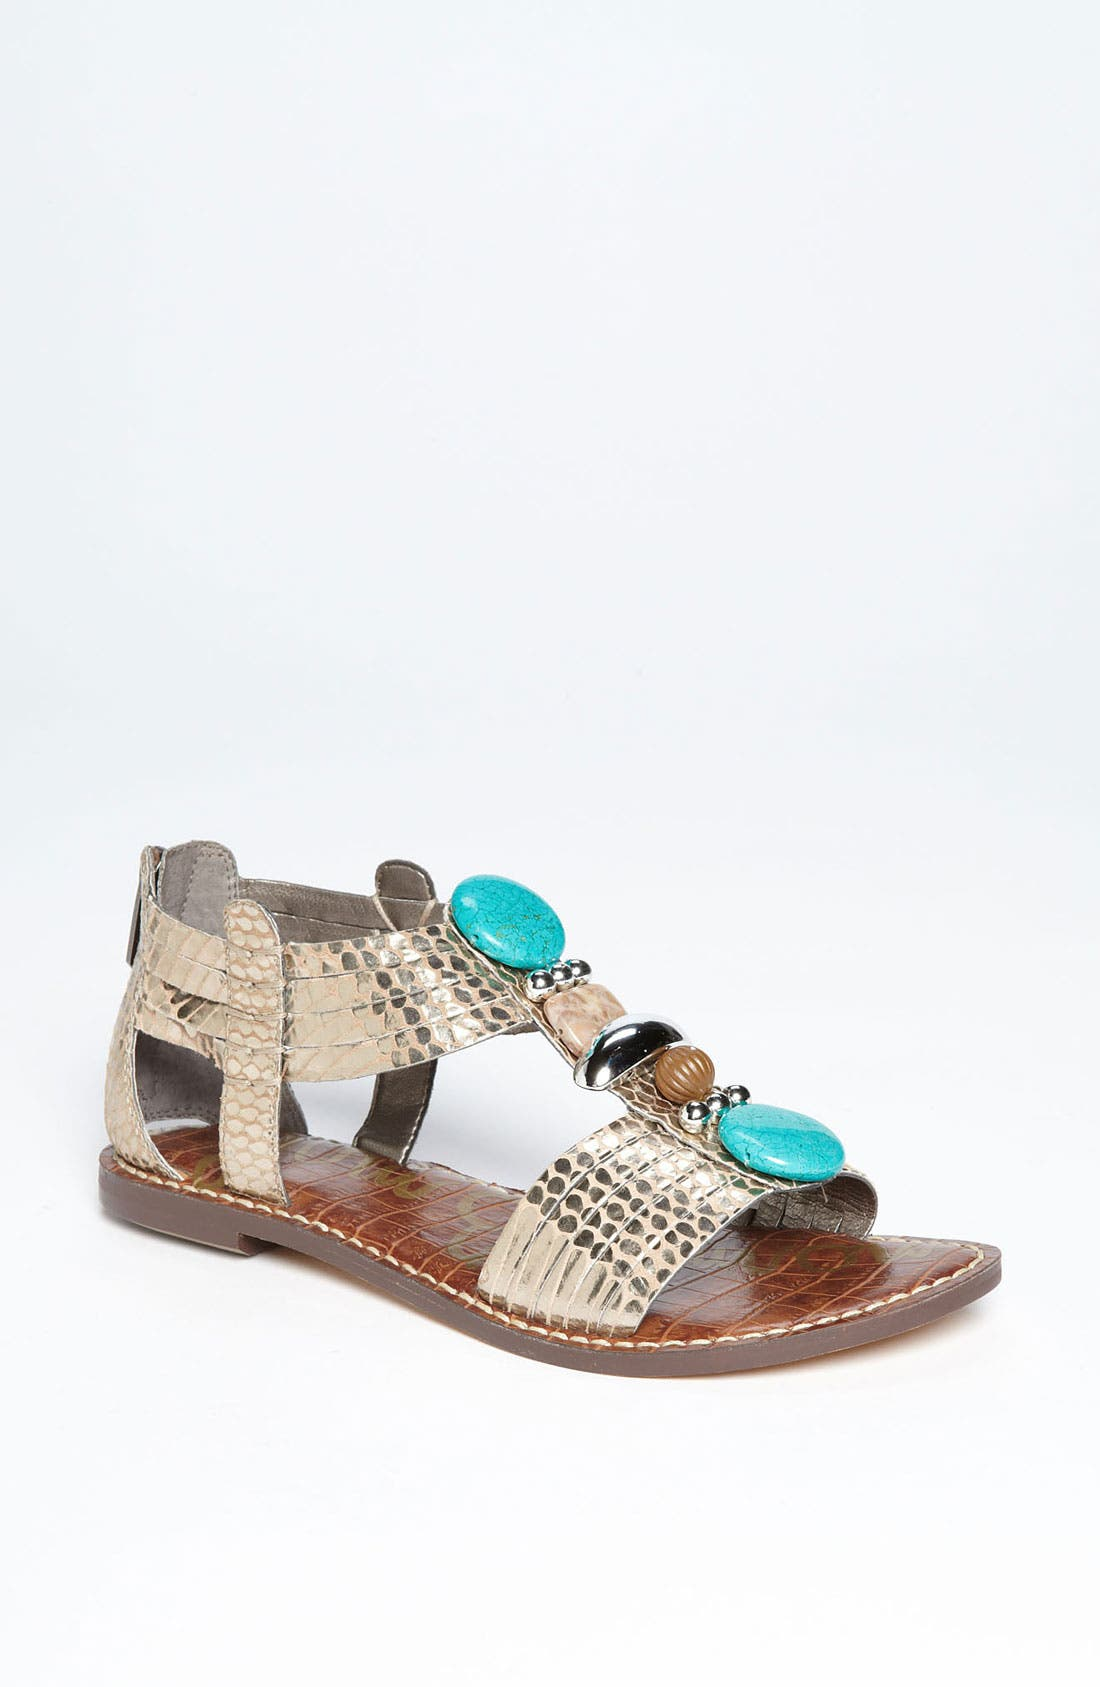 Alternate Image 1 Selected - Sam Edelman 'Gifford' Sandal